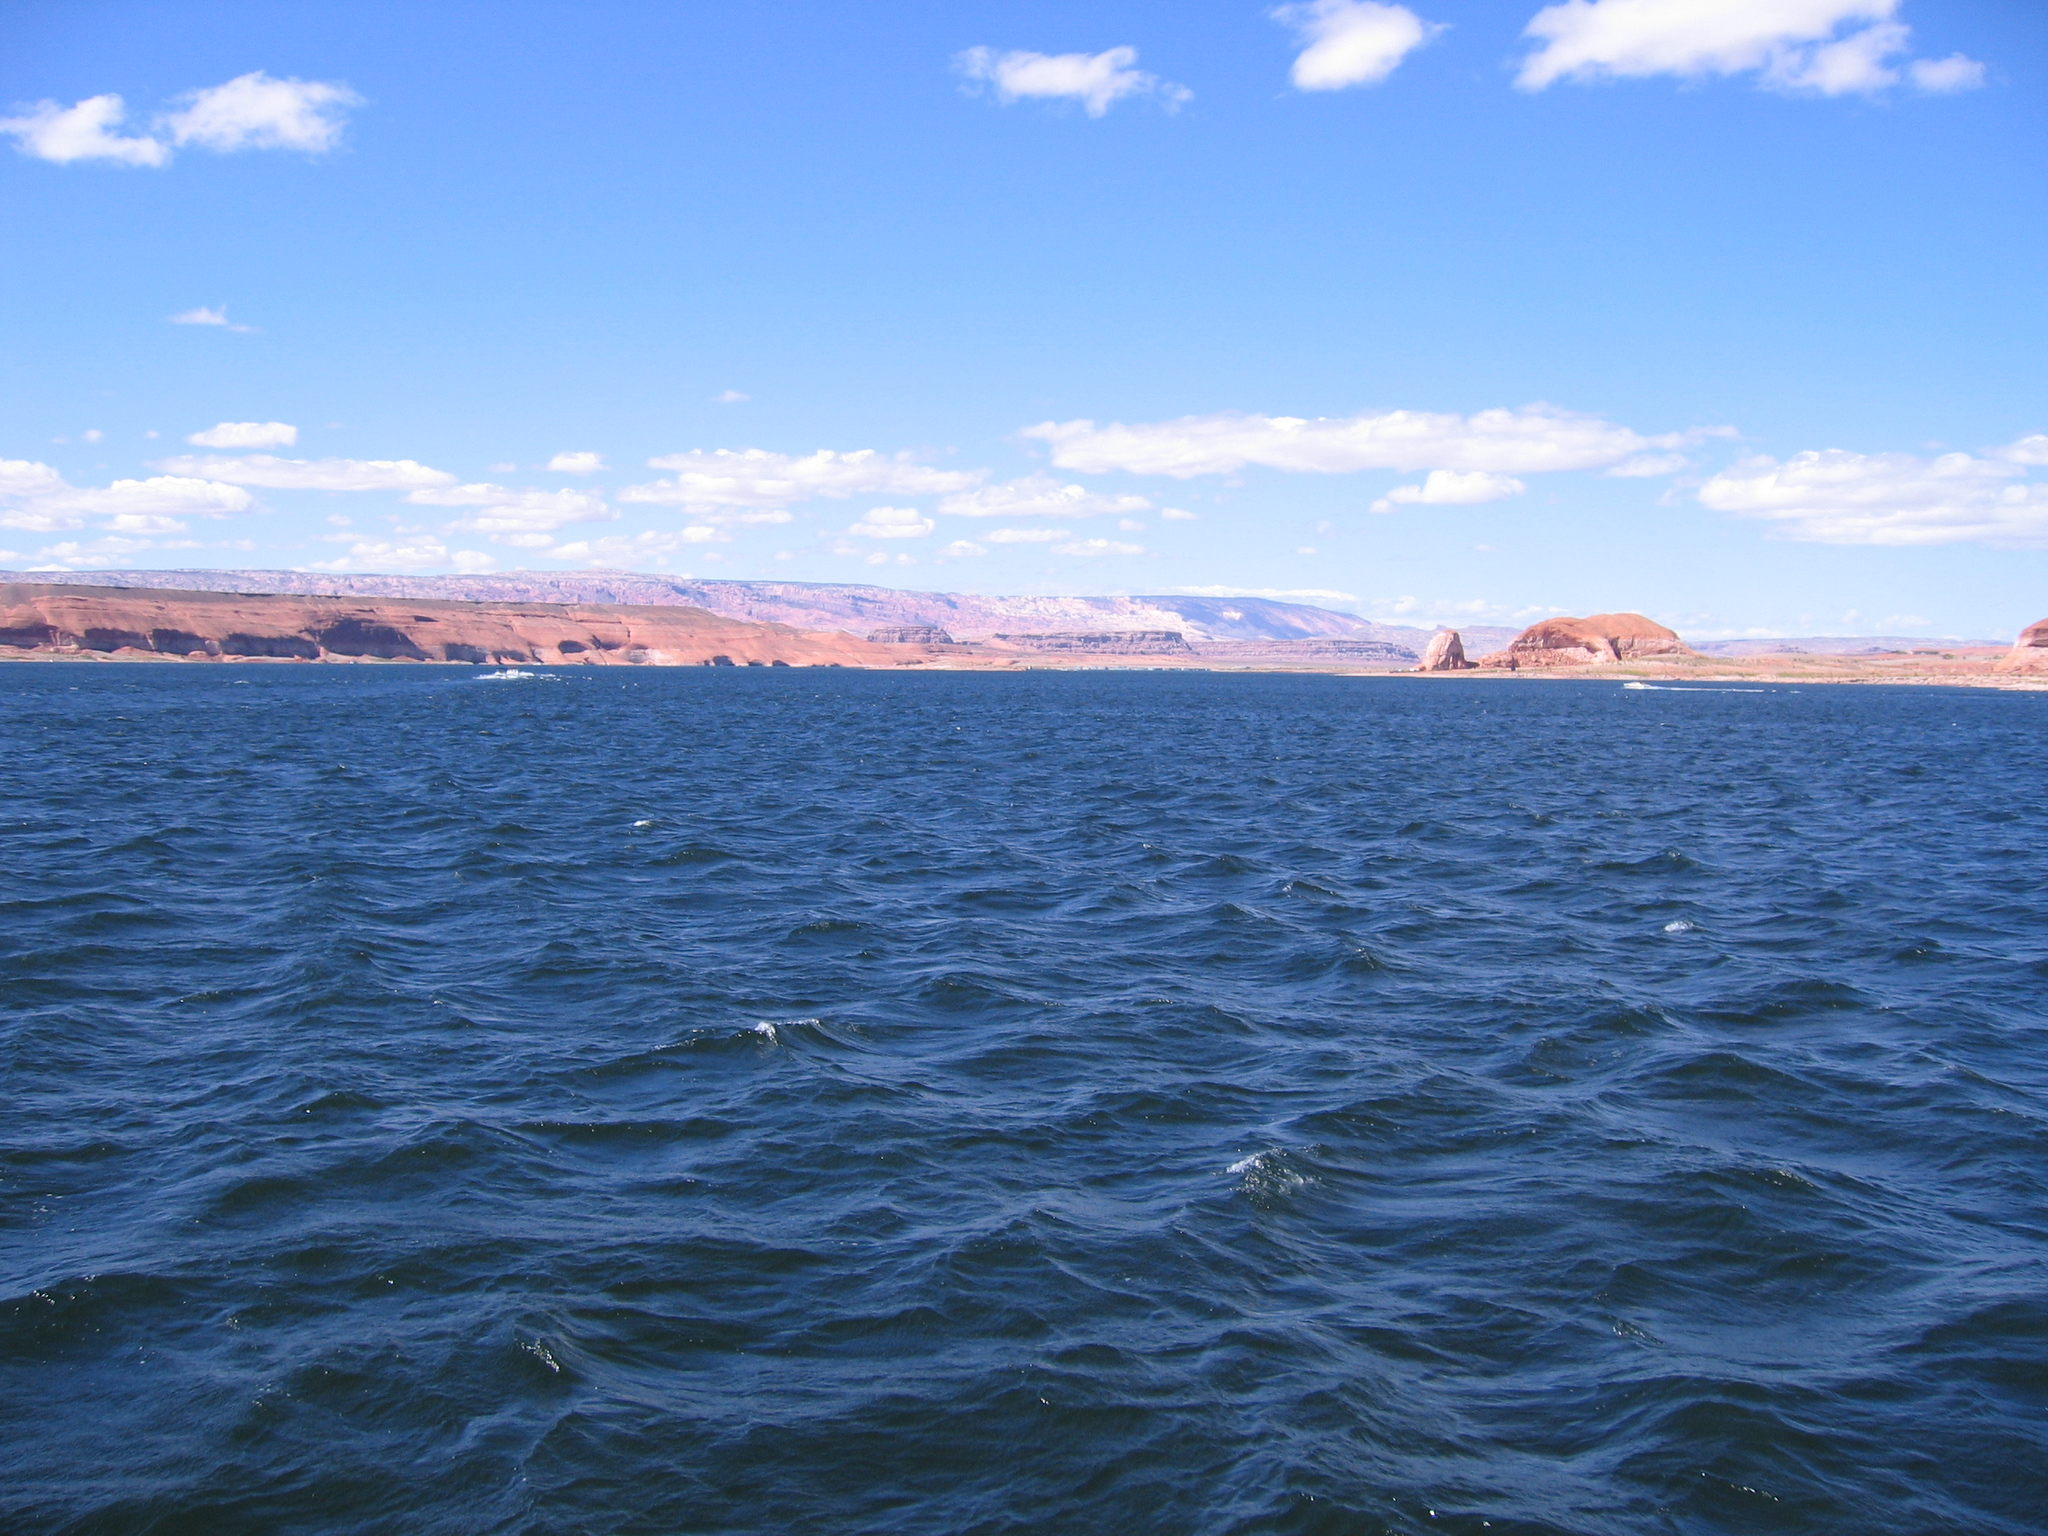 Steaming across Lake Powell.<br /> <br /> If we'd have missed the ferry it would have been a two hour wait... and we'd have been riding back to Torrey in the dark.